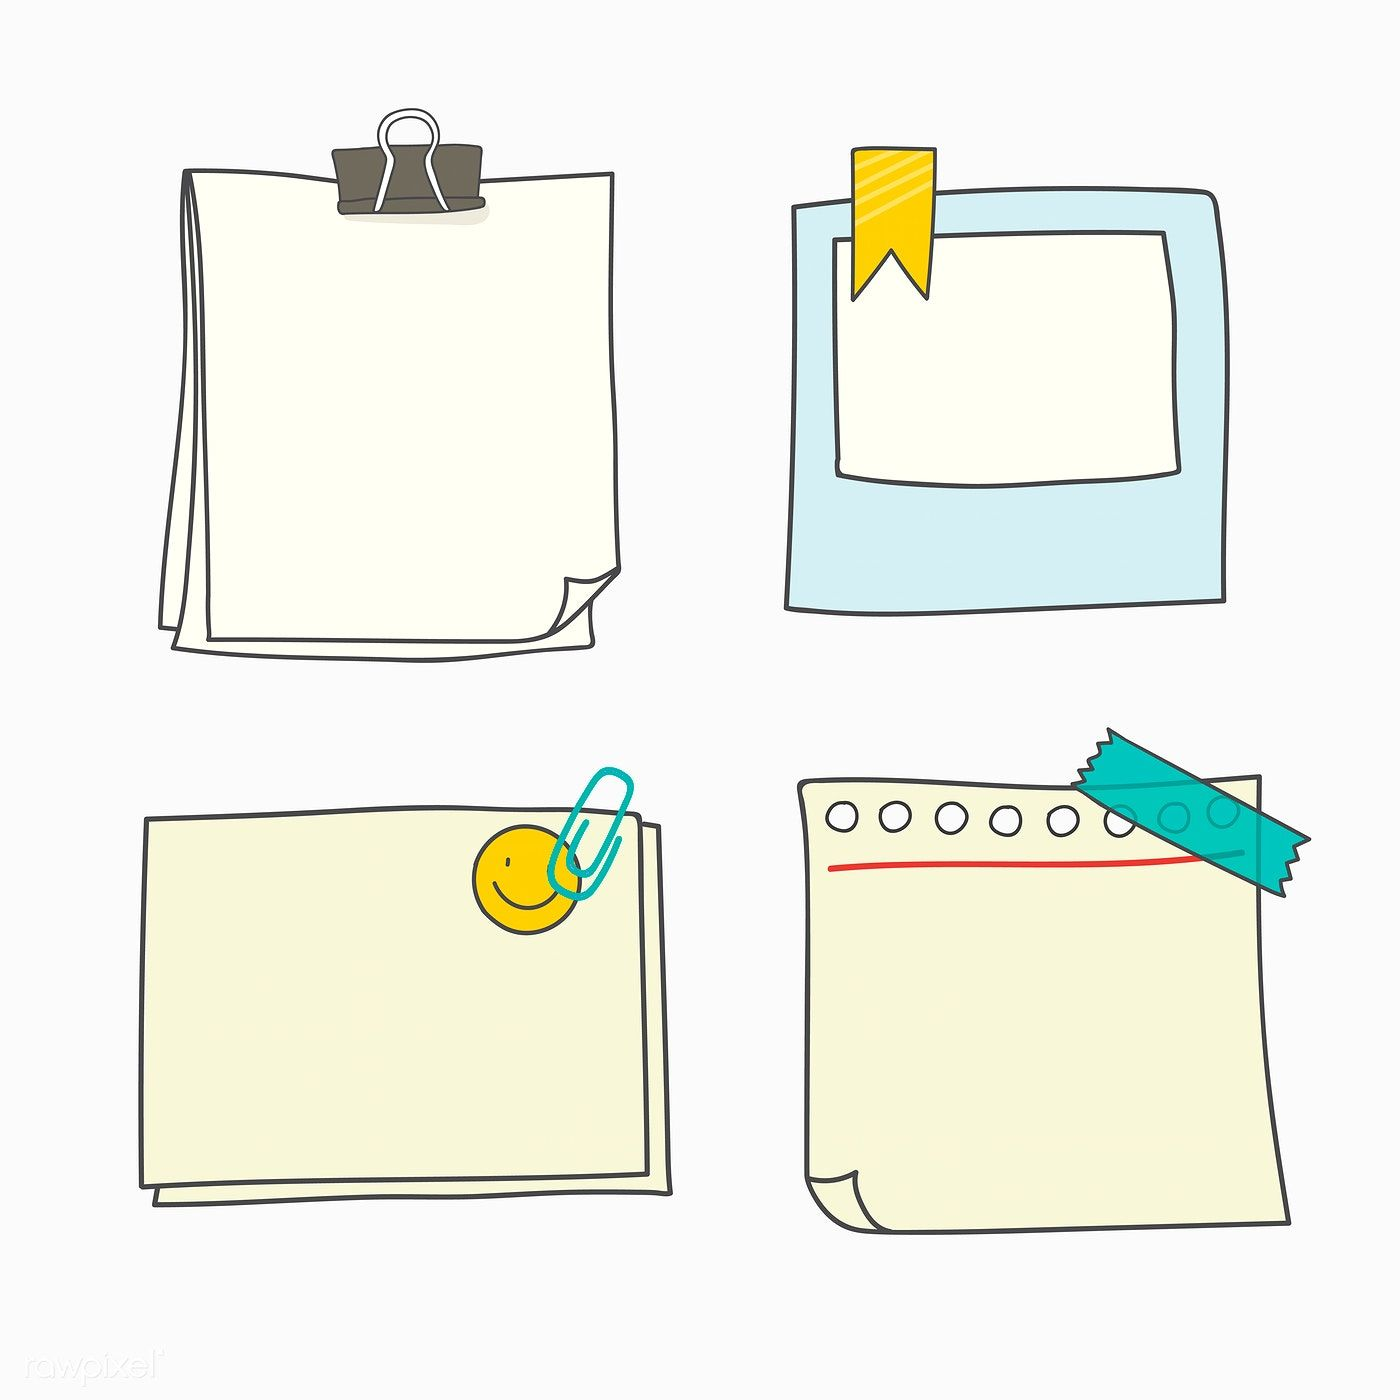 Brown Doodle Paper Note Transparent Png Free Image By Rawpixel Com Sasi Note Paper Note Doodles Paper Background Texture